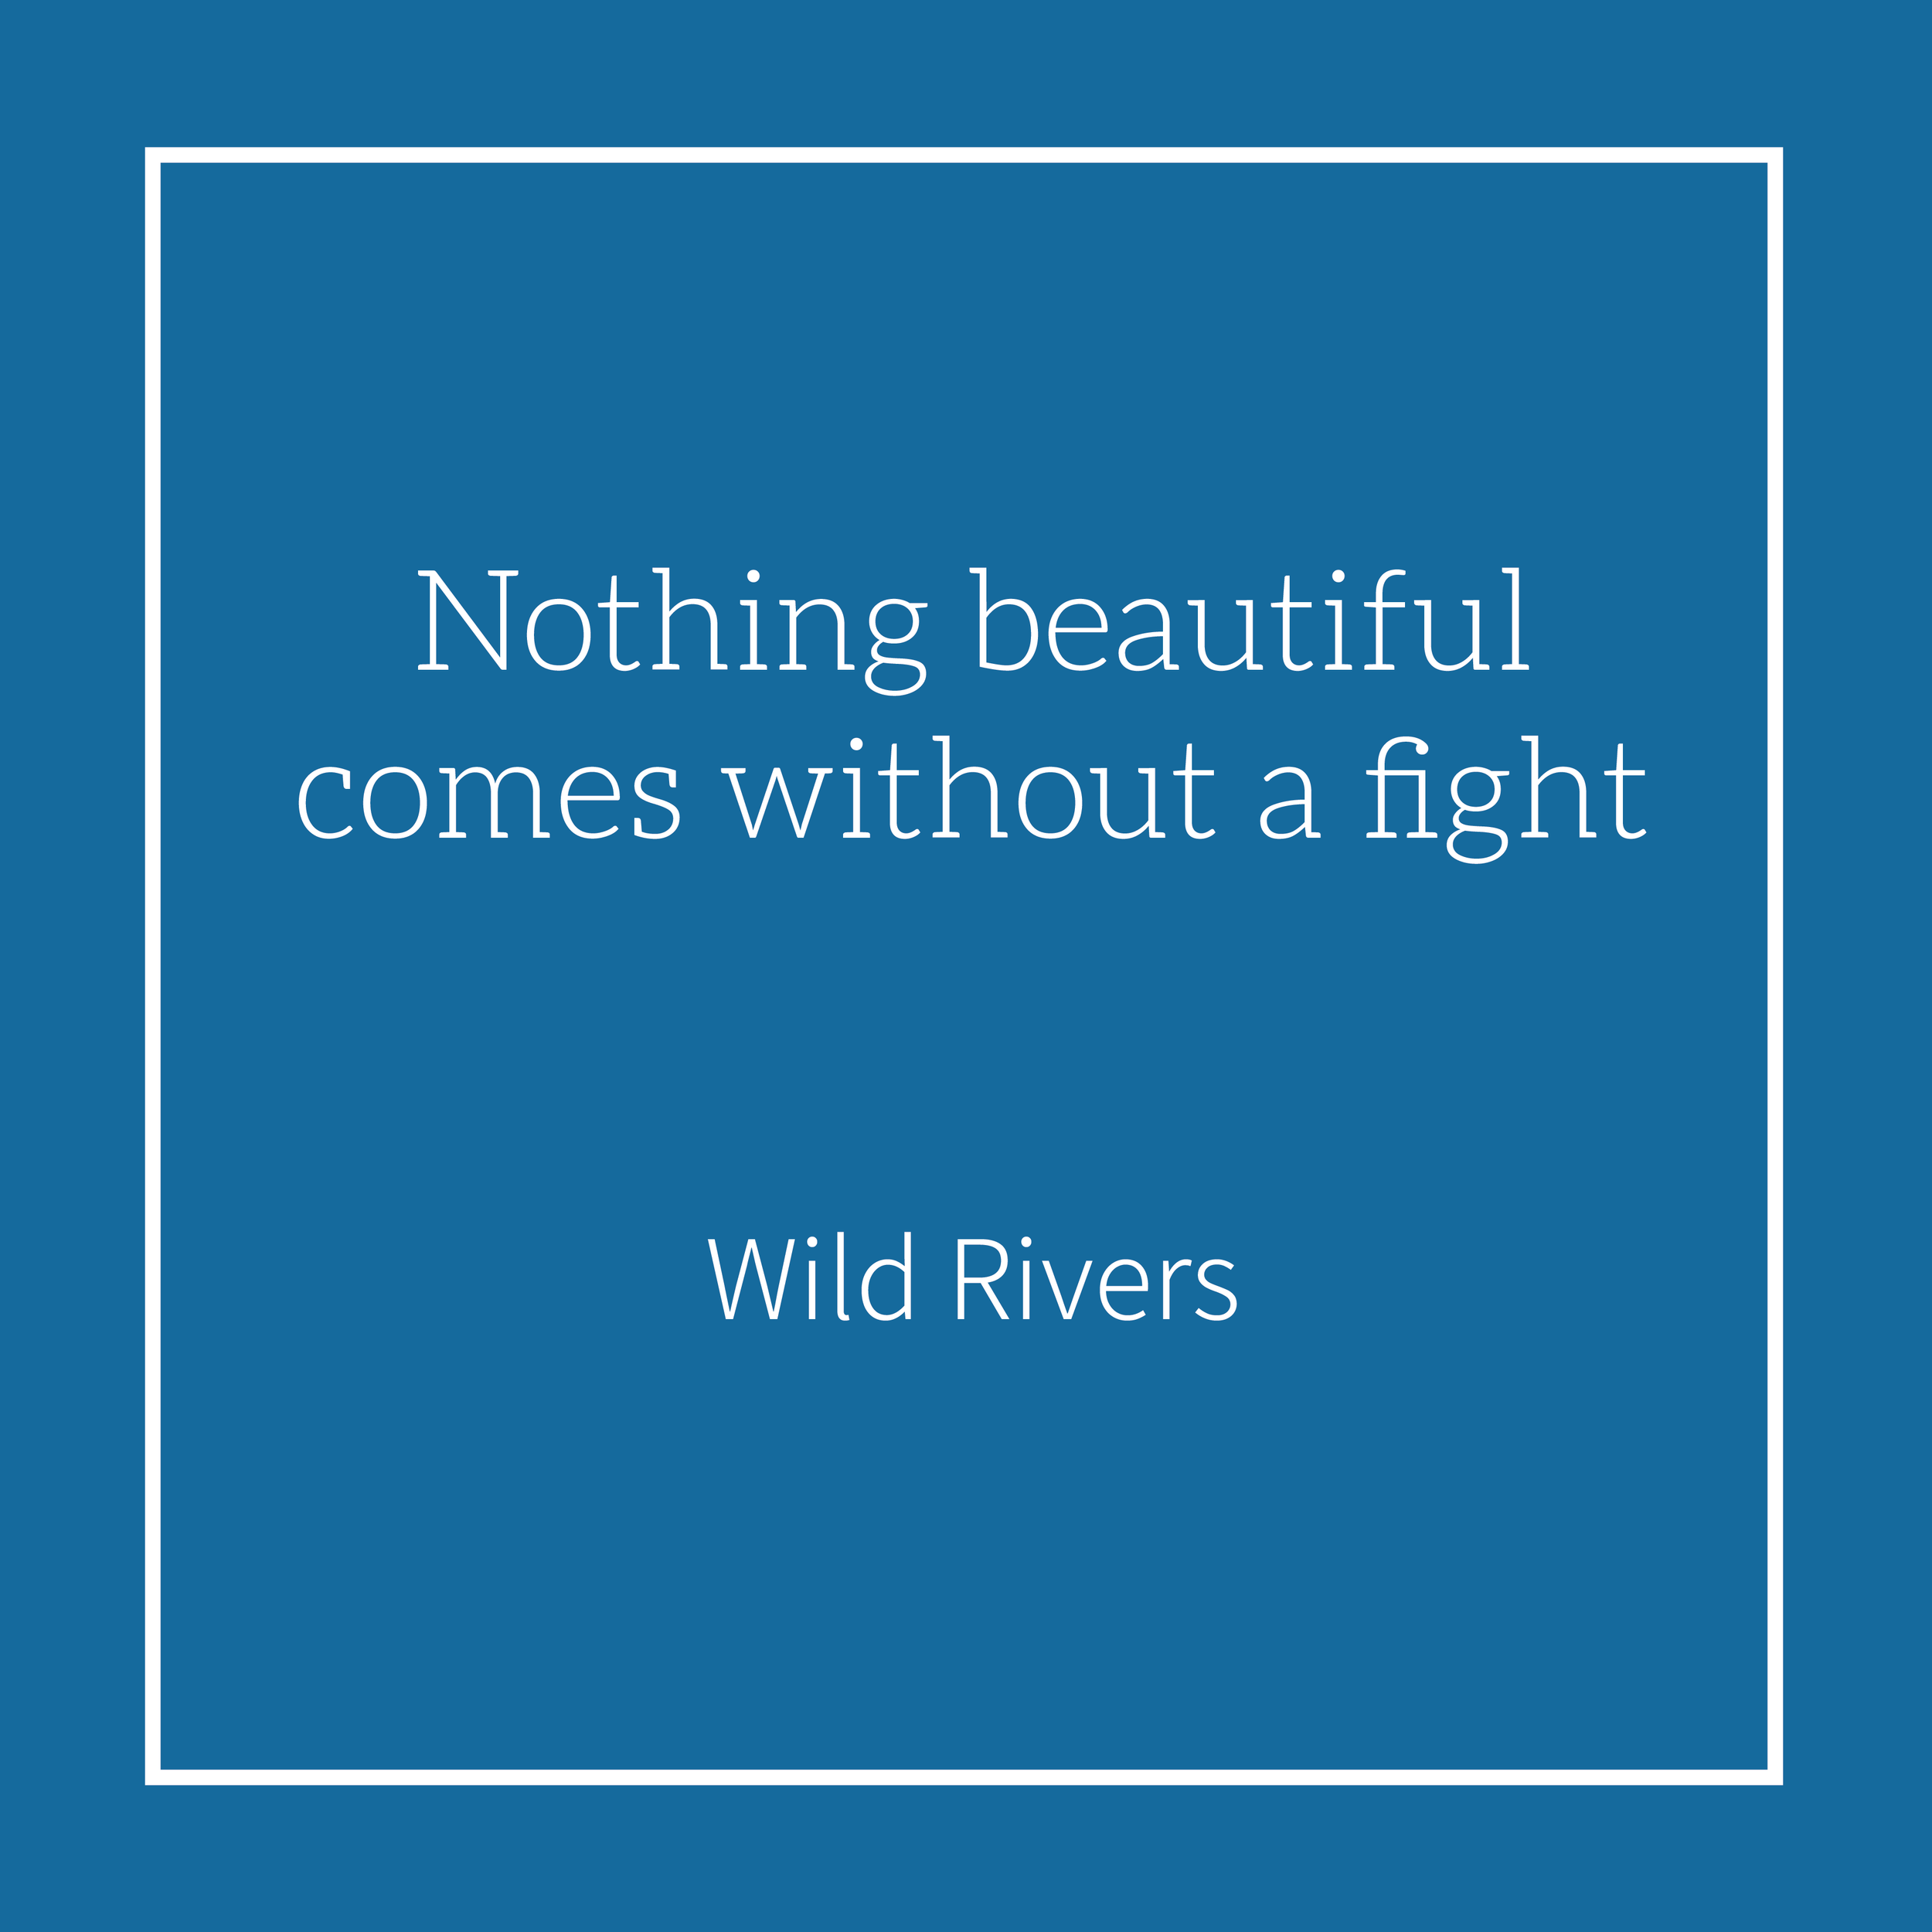 2019.05.31 Wild Rivers.png